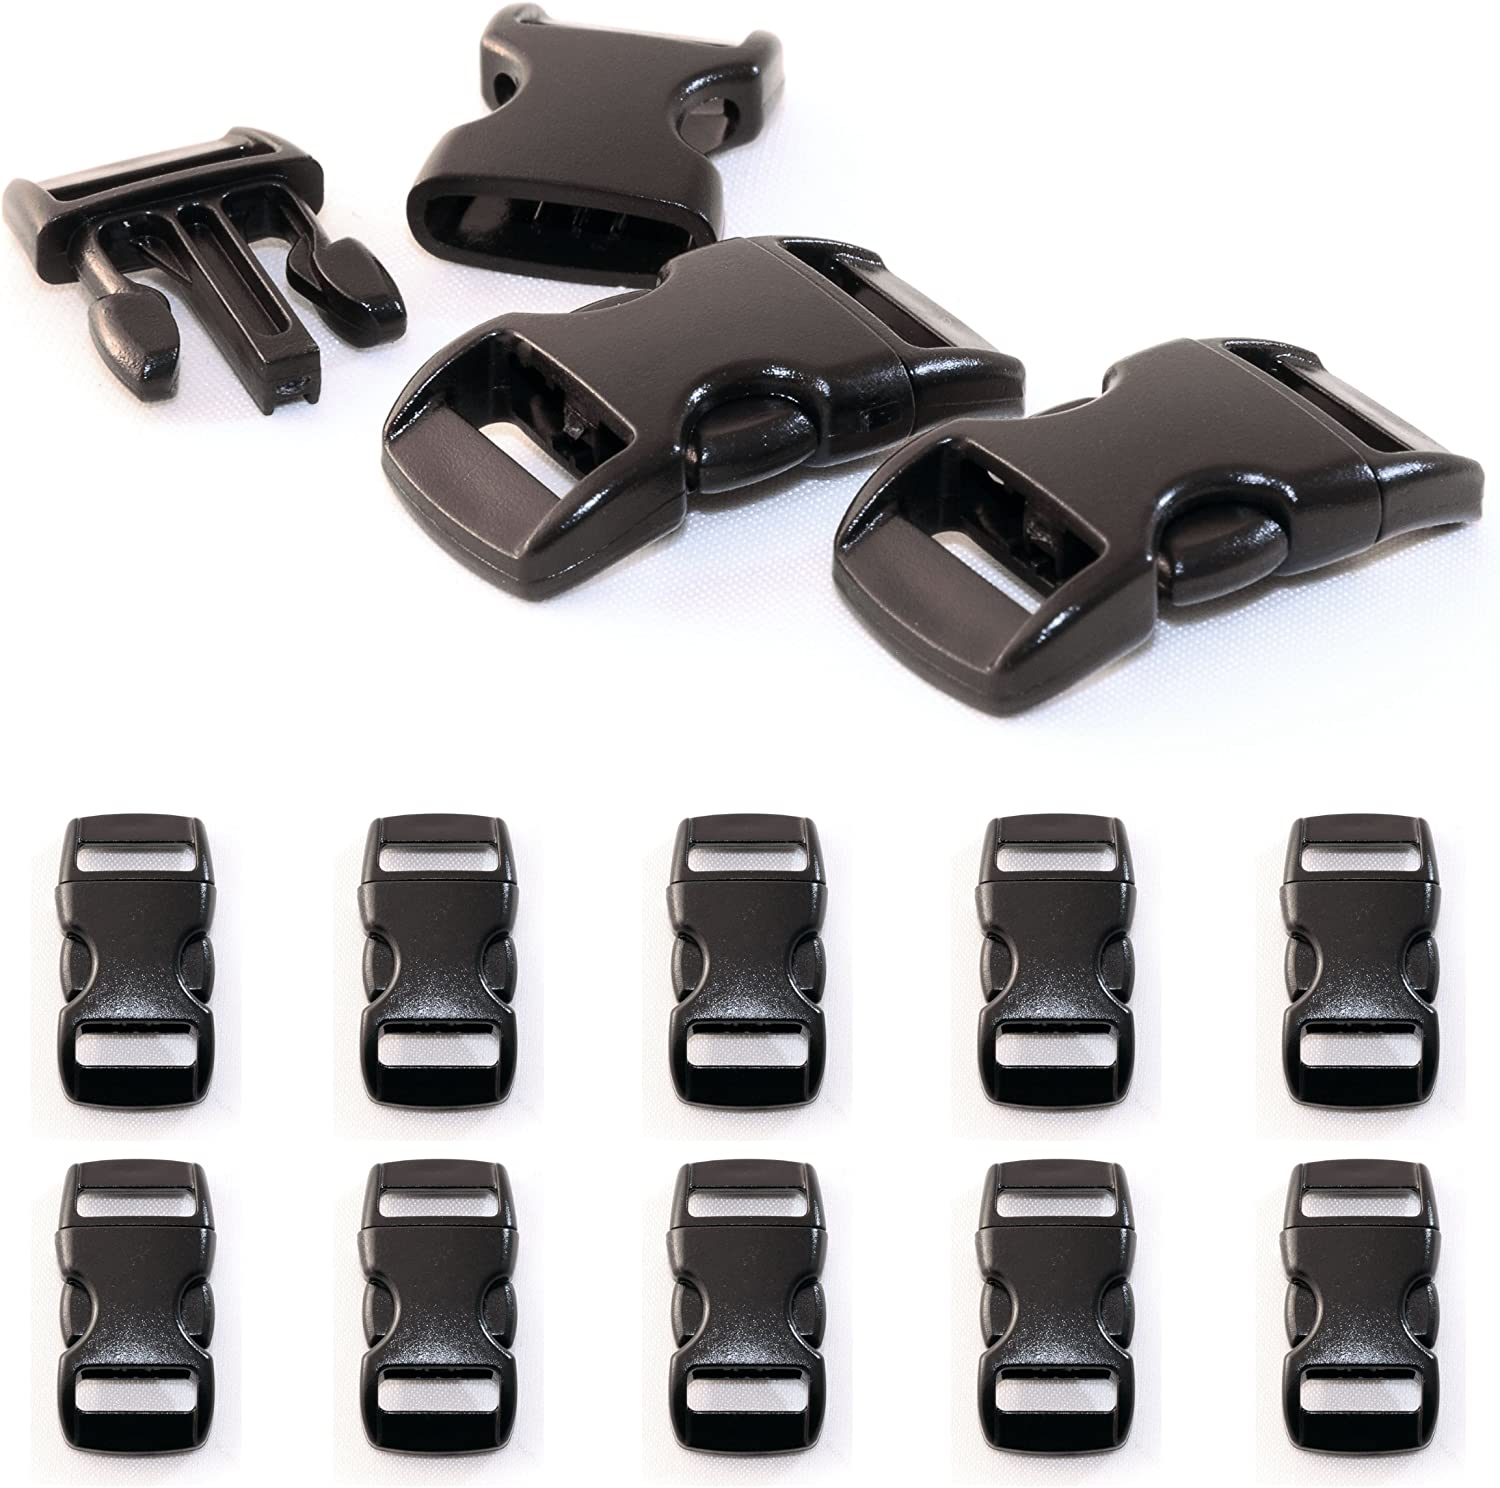 Ganzoo Set of 103/8Inch Click-release Catches / Buckle Clips (Click Buckle) made of Plastic for Paracord Bracelets, Cords etc., 29mm x 15mm, Colour: Black by Ganzoo